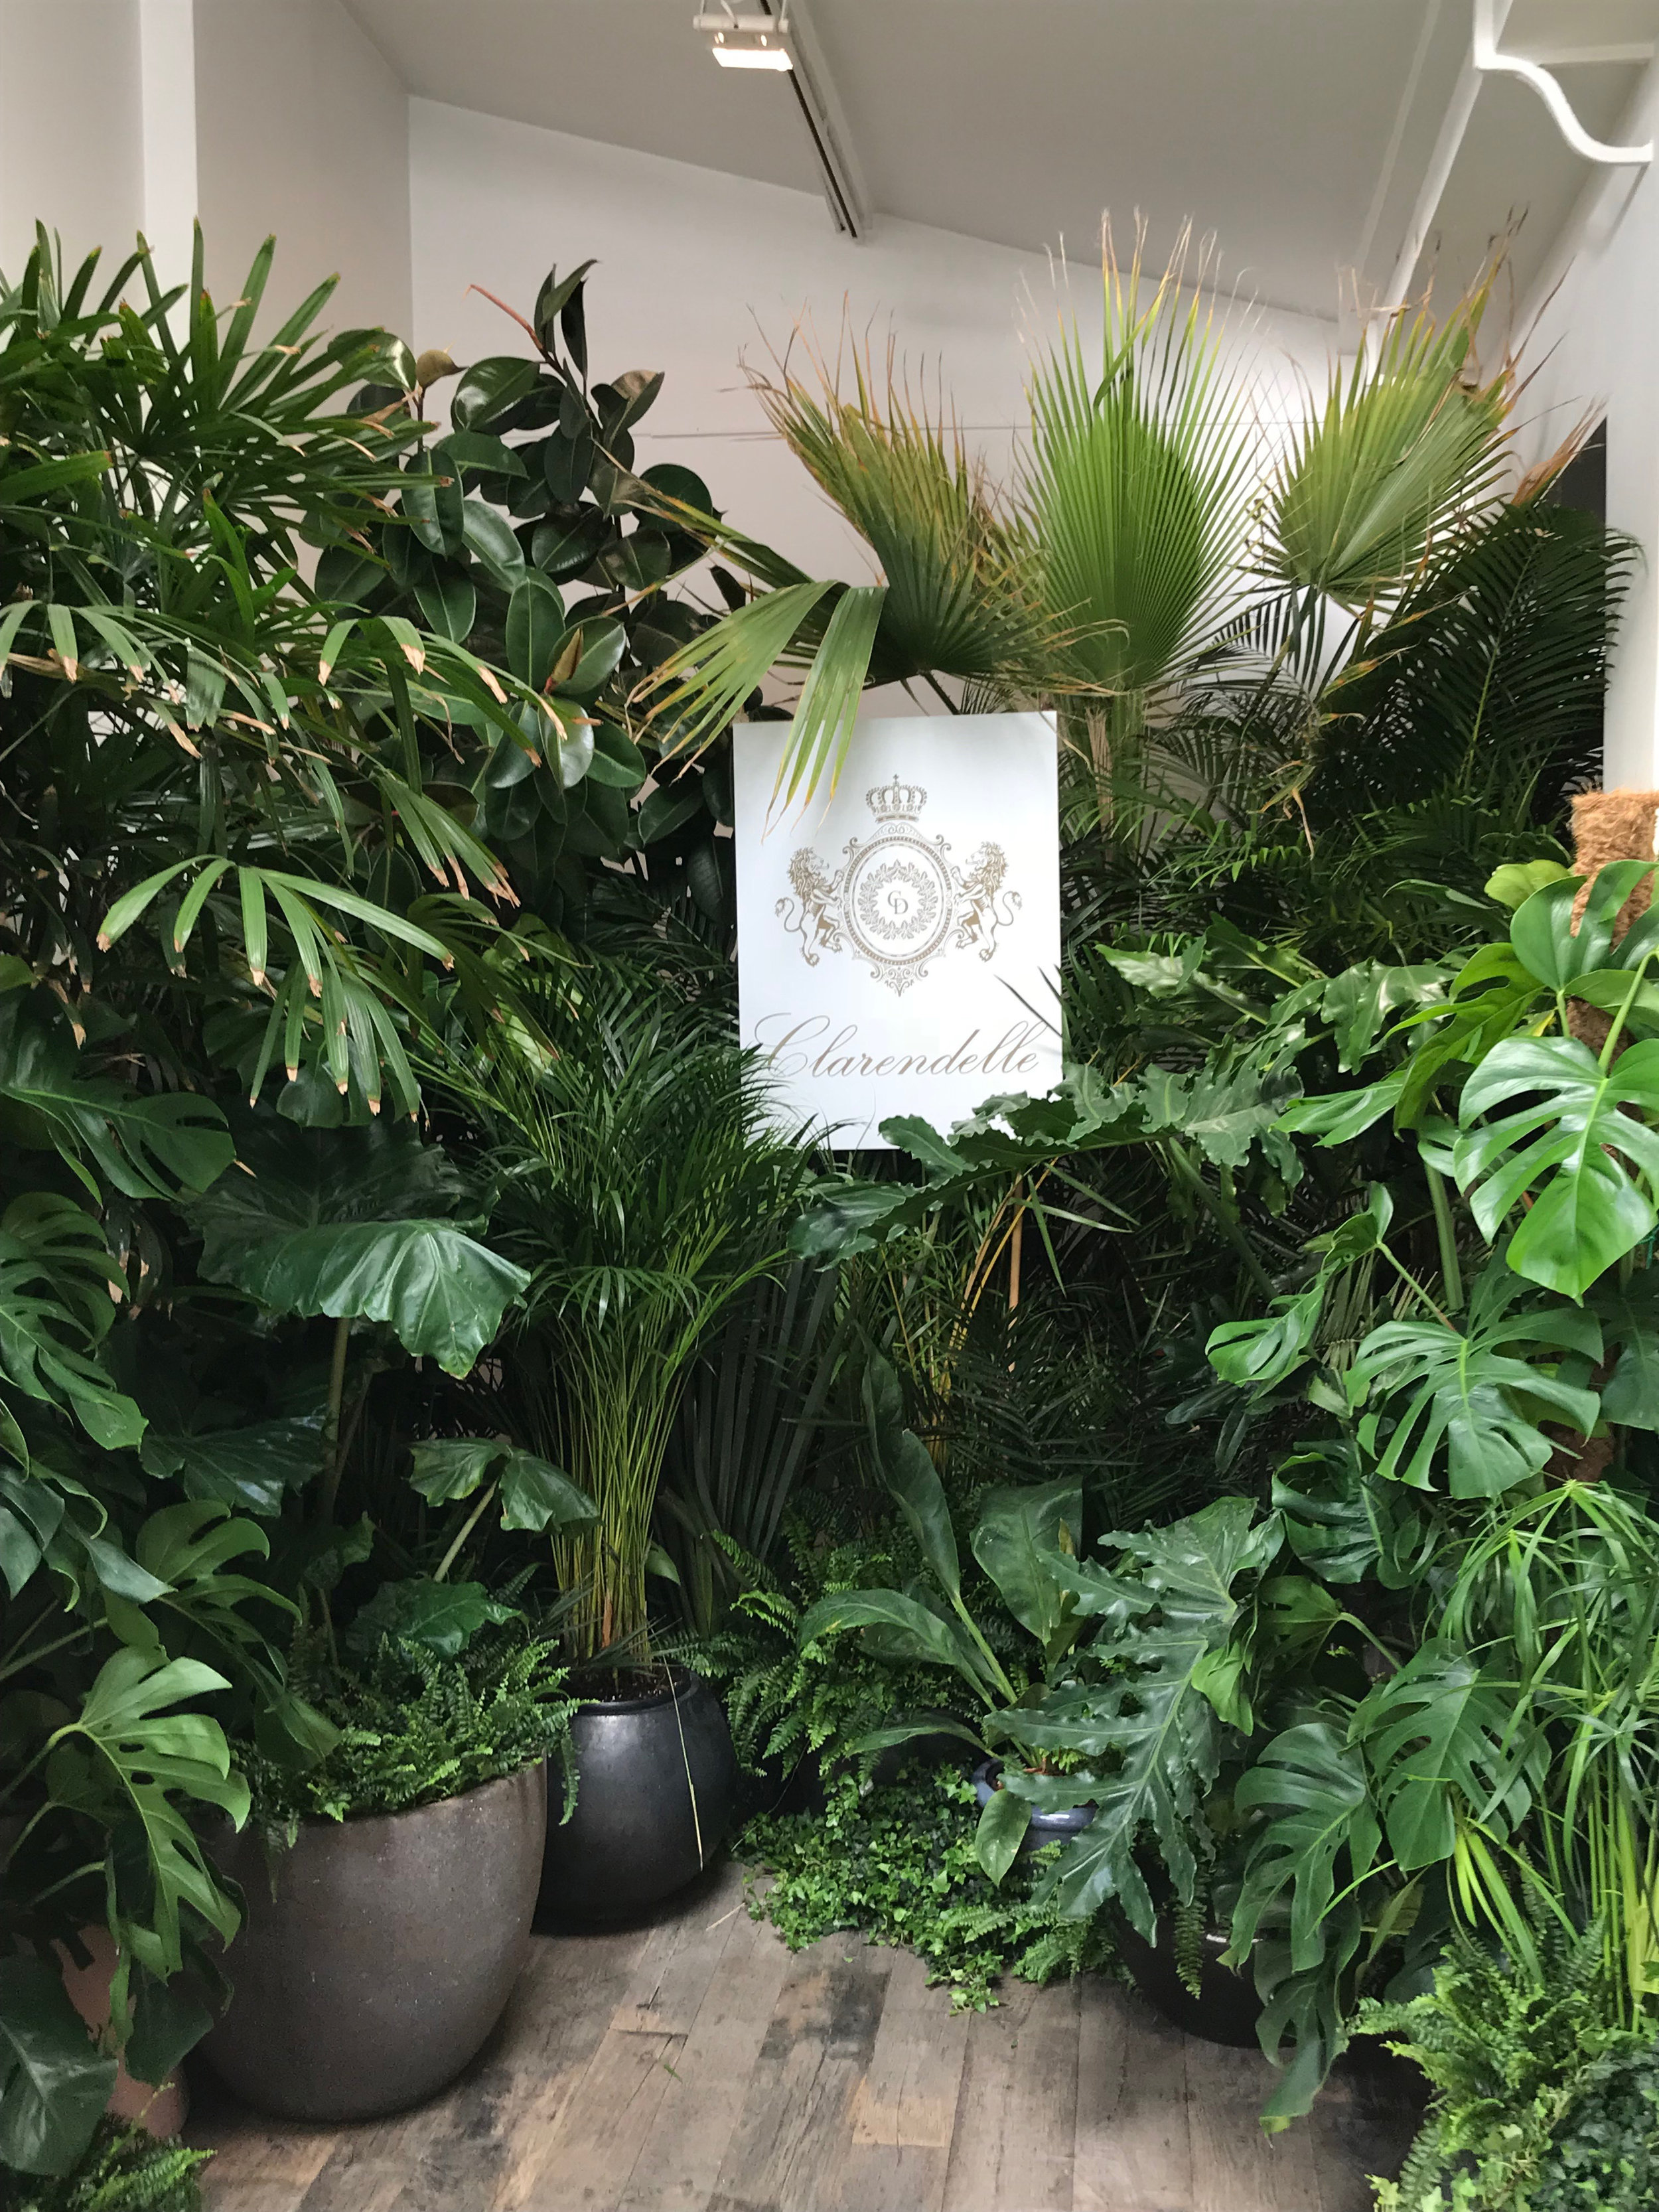 """Scenography Clarendelle / Atelier 13 Sévigné, Paris  The space """"Atelier 13 Sévigné"""" has been completely transformed for an evening into a vegetable oasis to offer to its guests a green paradise of pleasure and entertainment."""